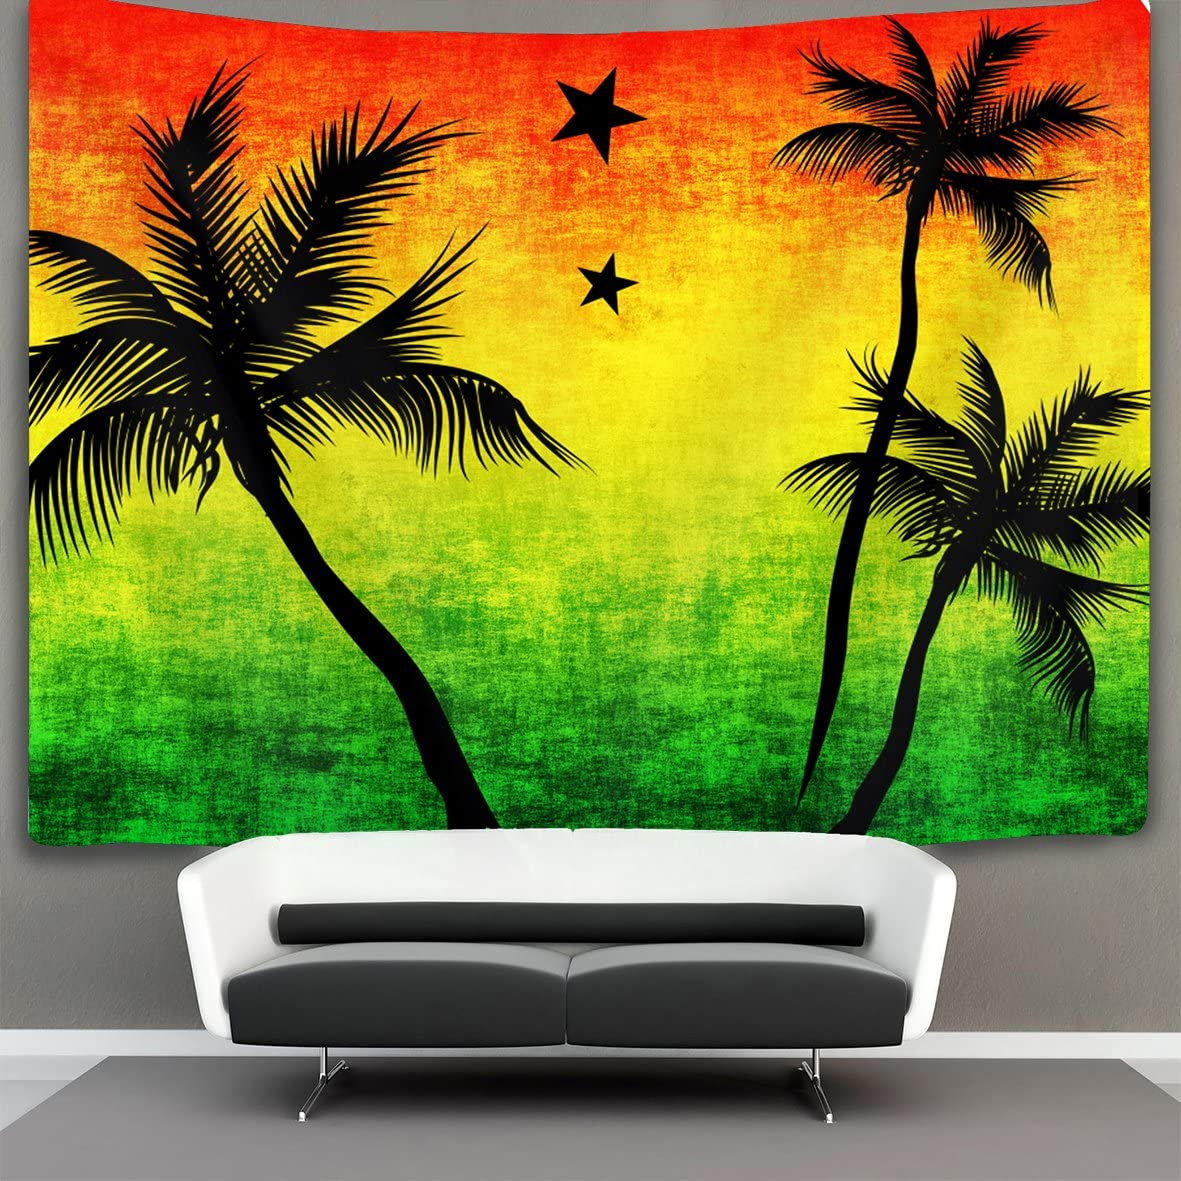 SWEET TANG Tapestry Mandala Tapestry Wall Hanging Tapestries Wall Tapestry Jamaica Rasta Palm Tree Wall Blanket Wall Decor Wall Art Home Decor Collage Dorm Decoration 60 x 90 Inches